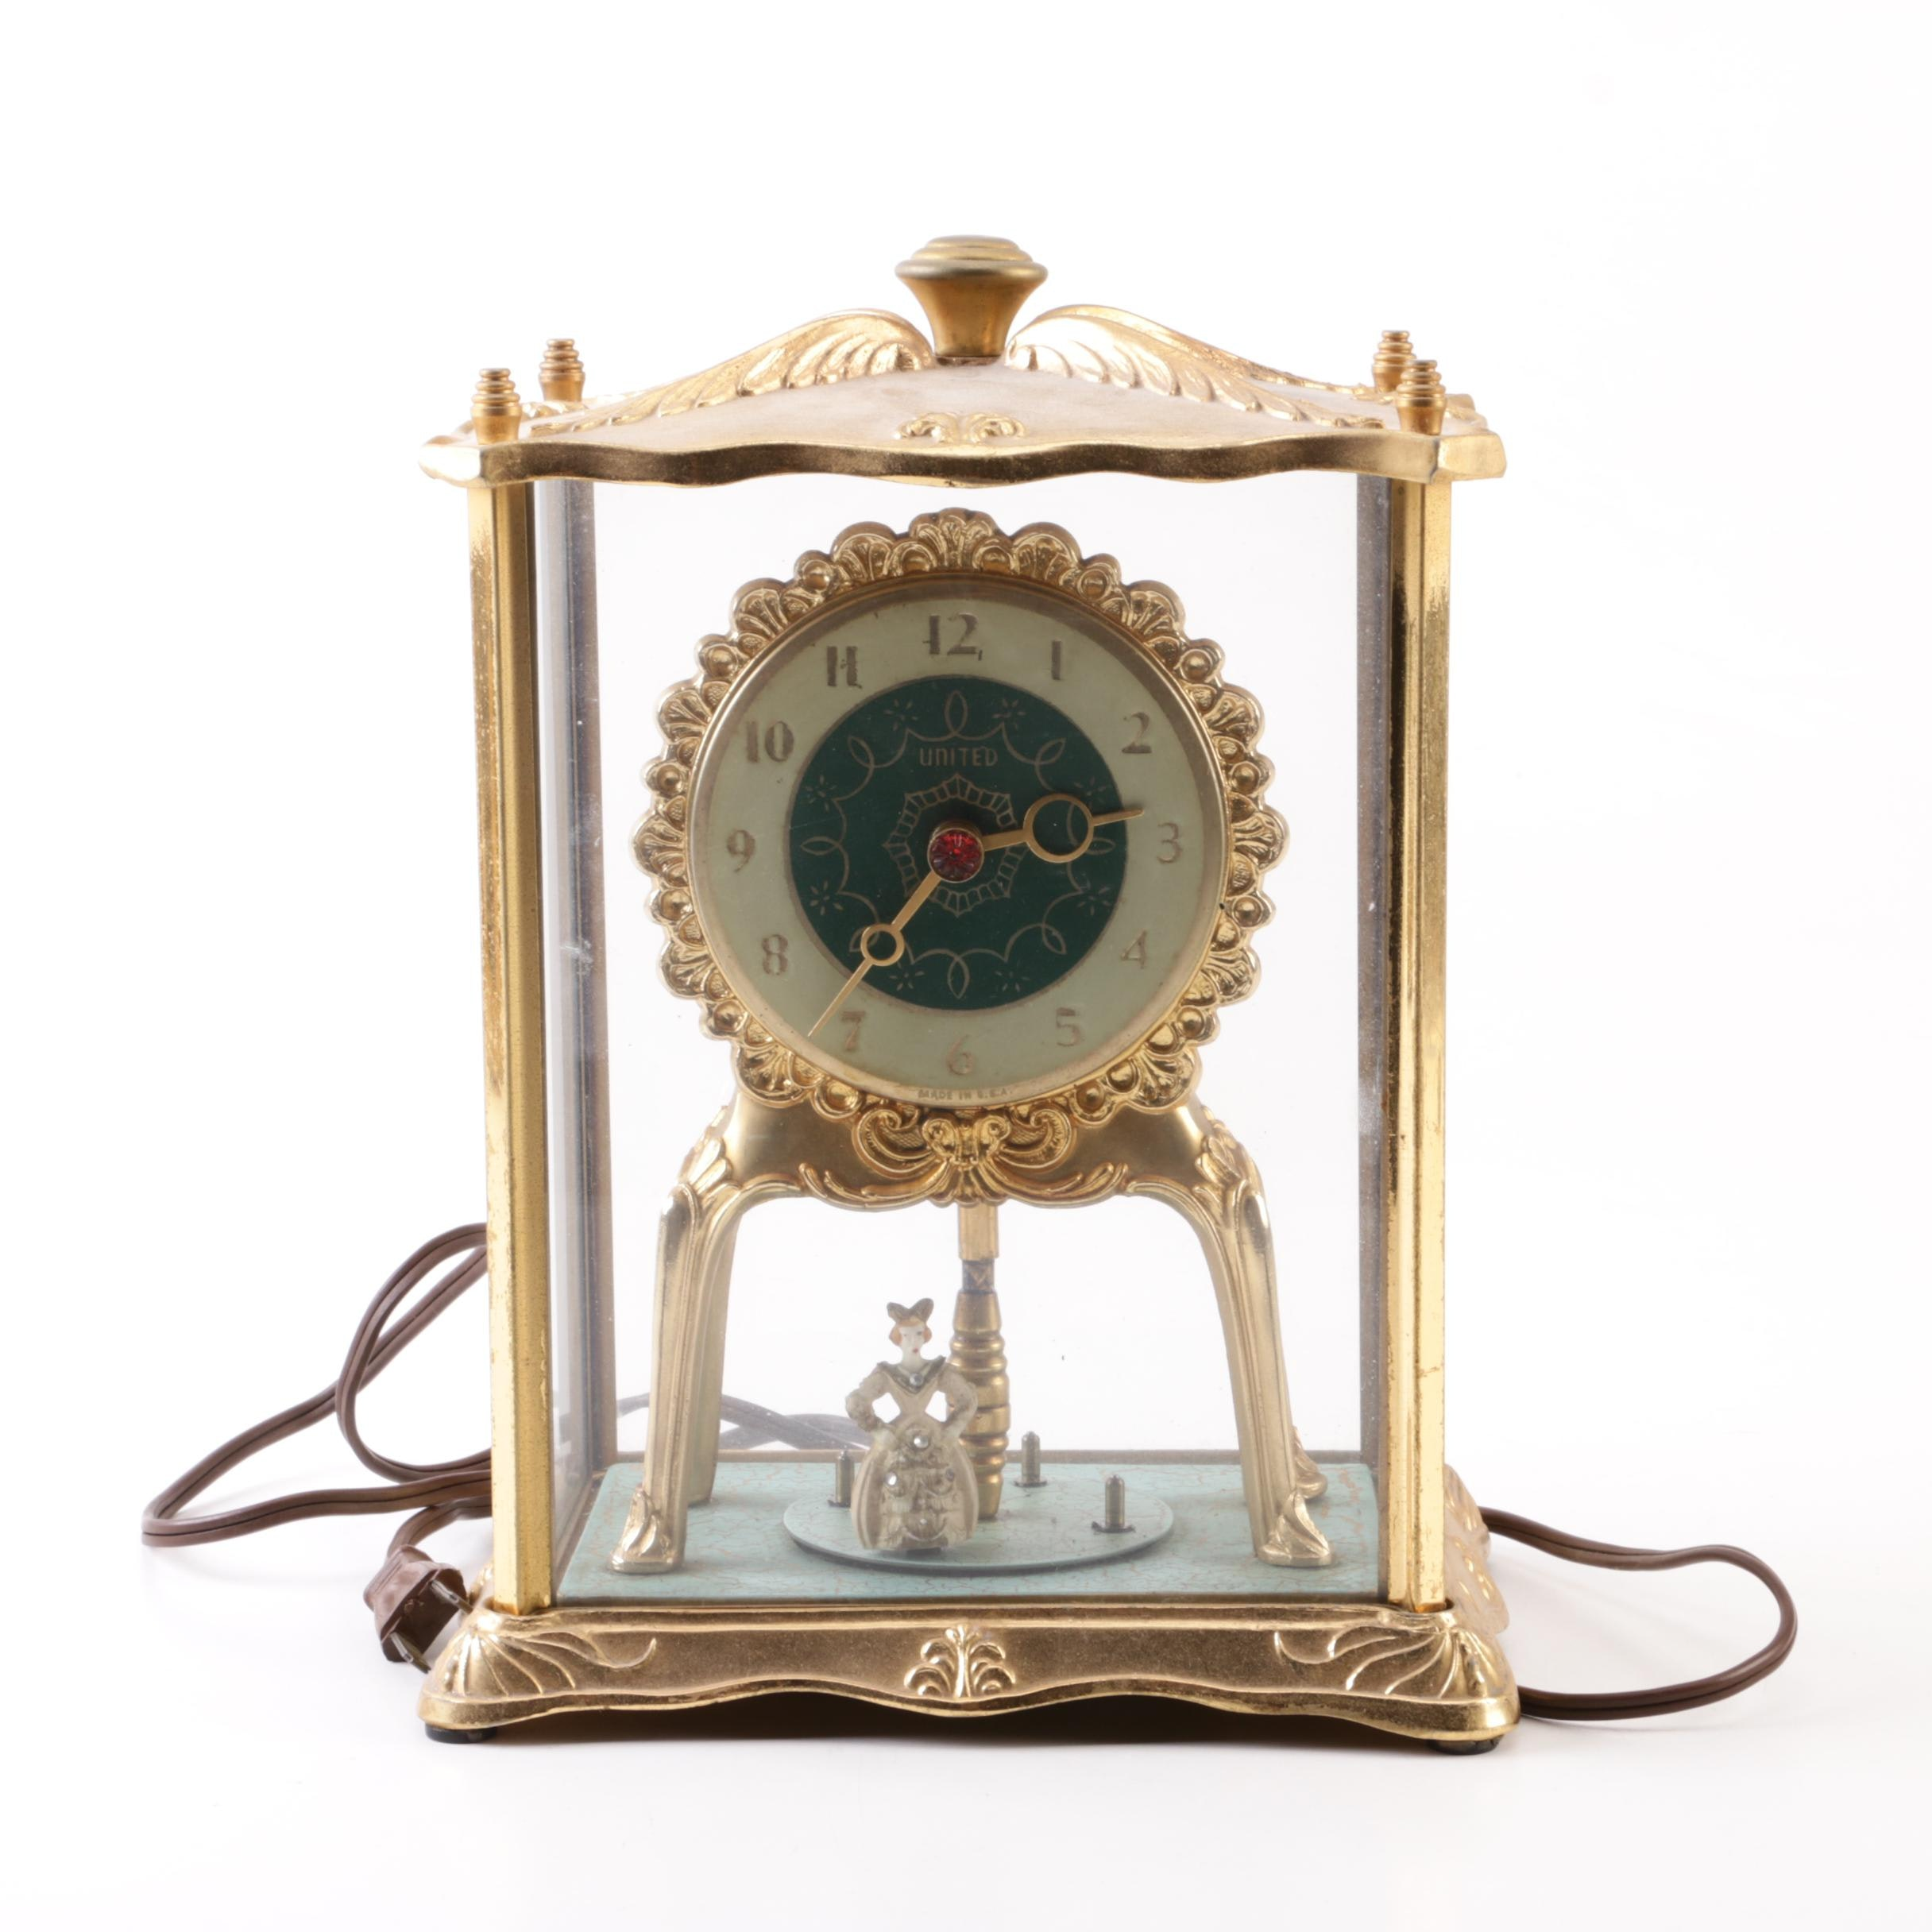 United Clock Co. Electric Motion Mantel Clock